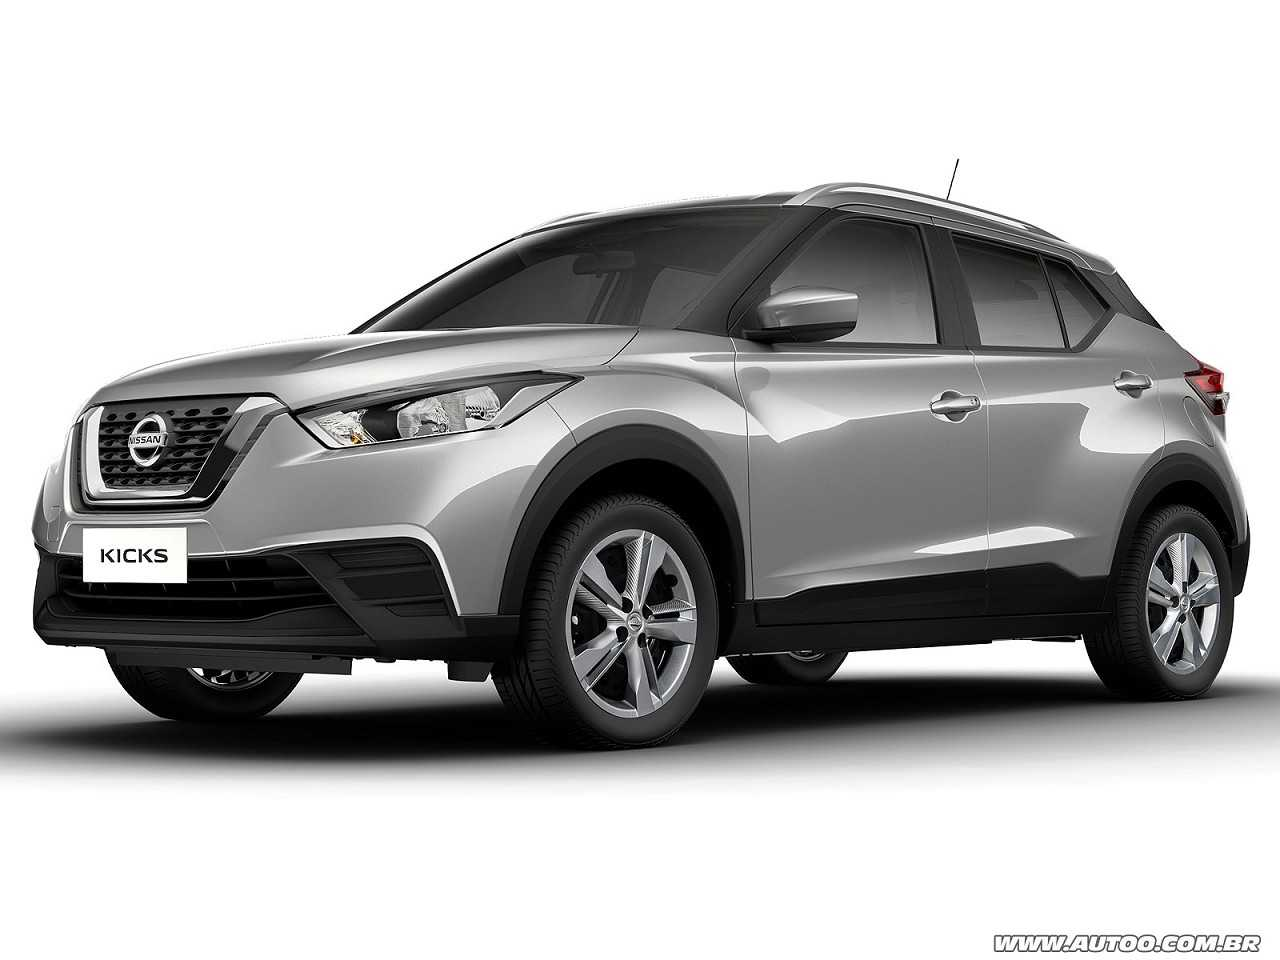 Nissan Kicks - AUTOO